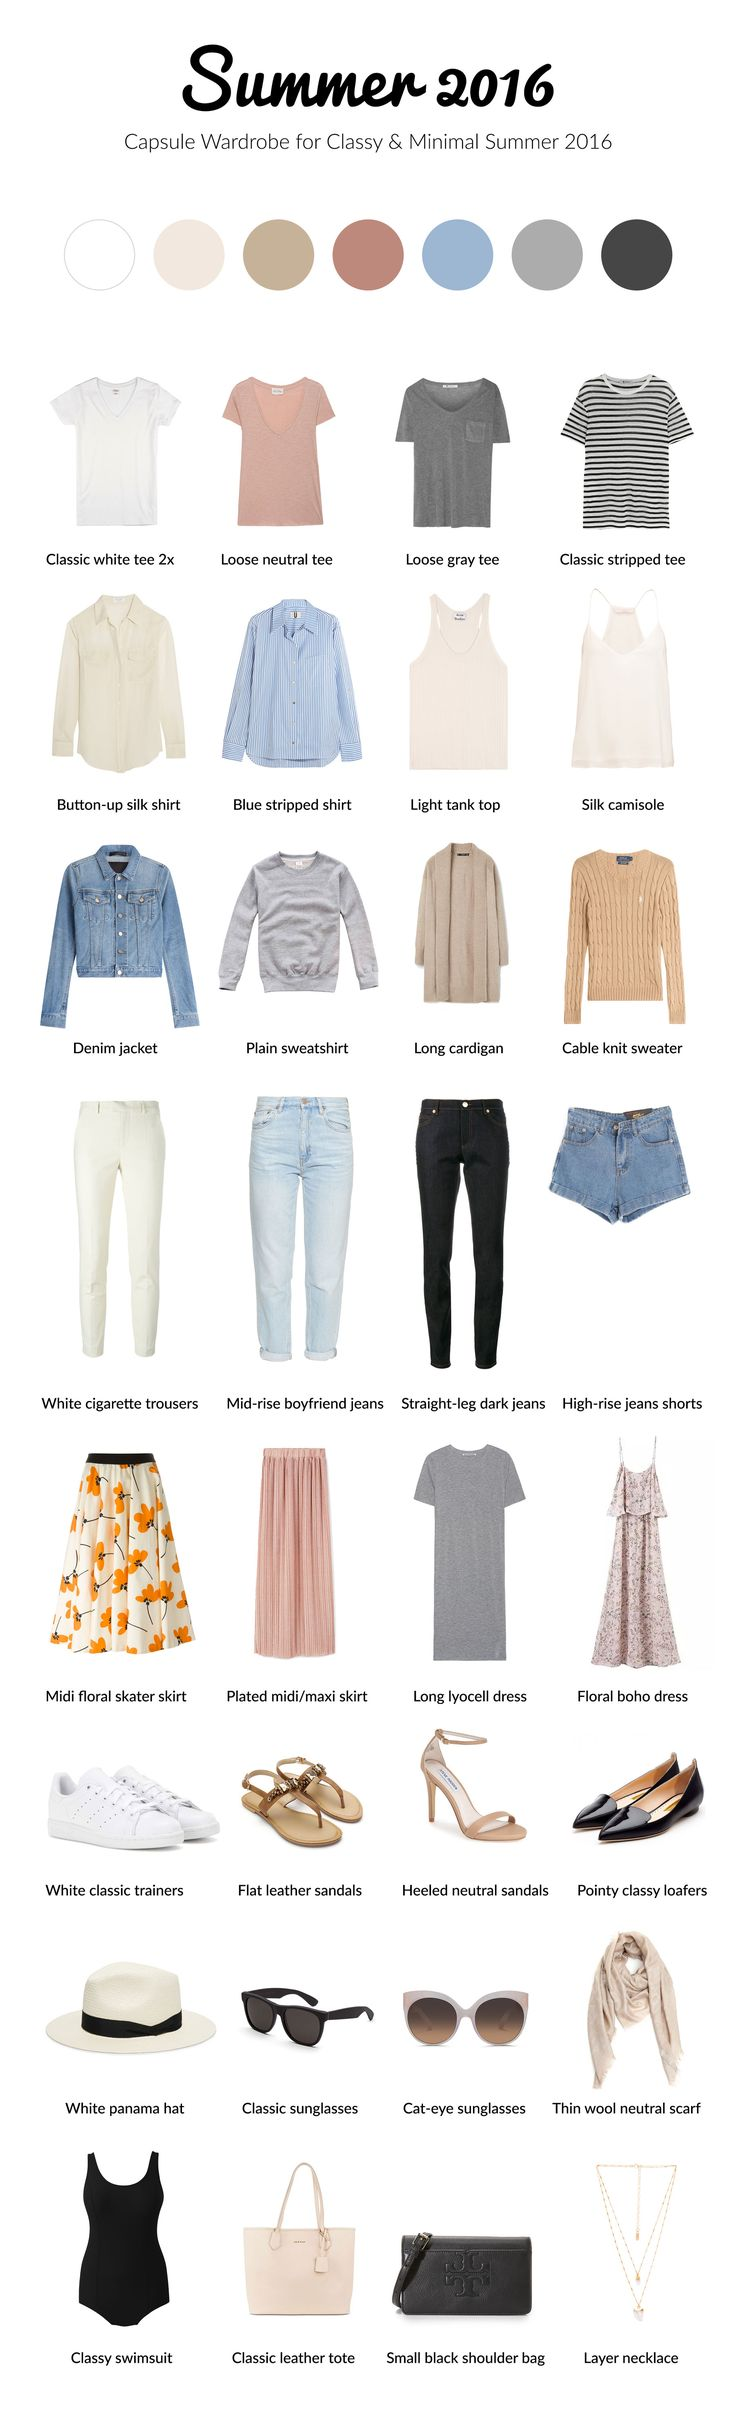 Summer 2016 capsule wardrobe for classy and #minimal #capsule by @brigitadaisy